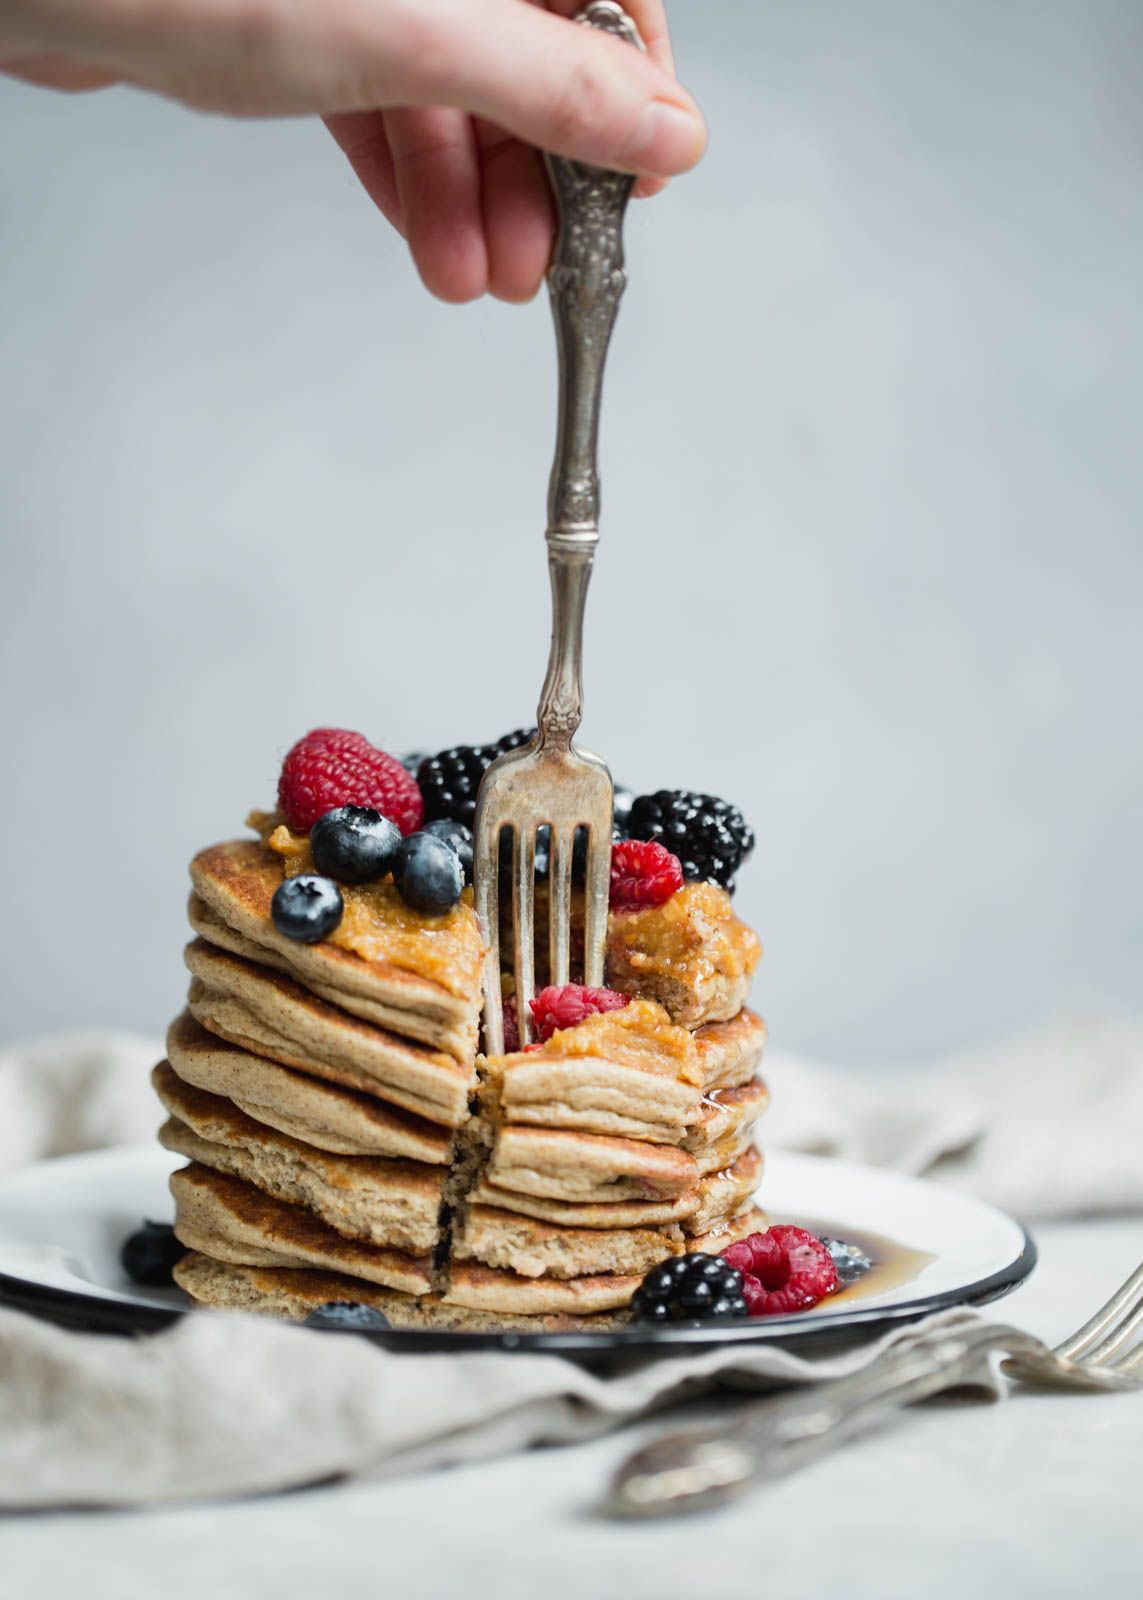 Cottage Cheese Banana Oatmeal Protein Pancakes Recipe Cottage Cheese Protein Pancakes Protein Pancakes Easy Protein Pancakes